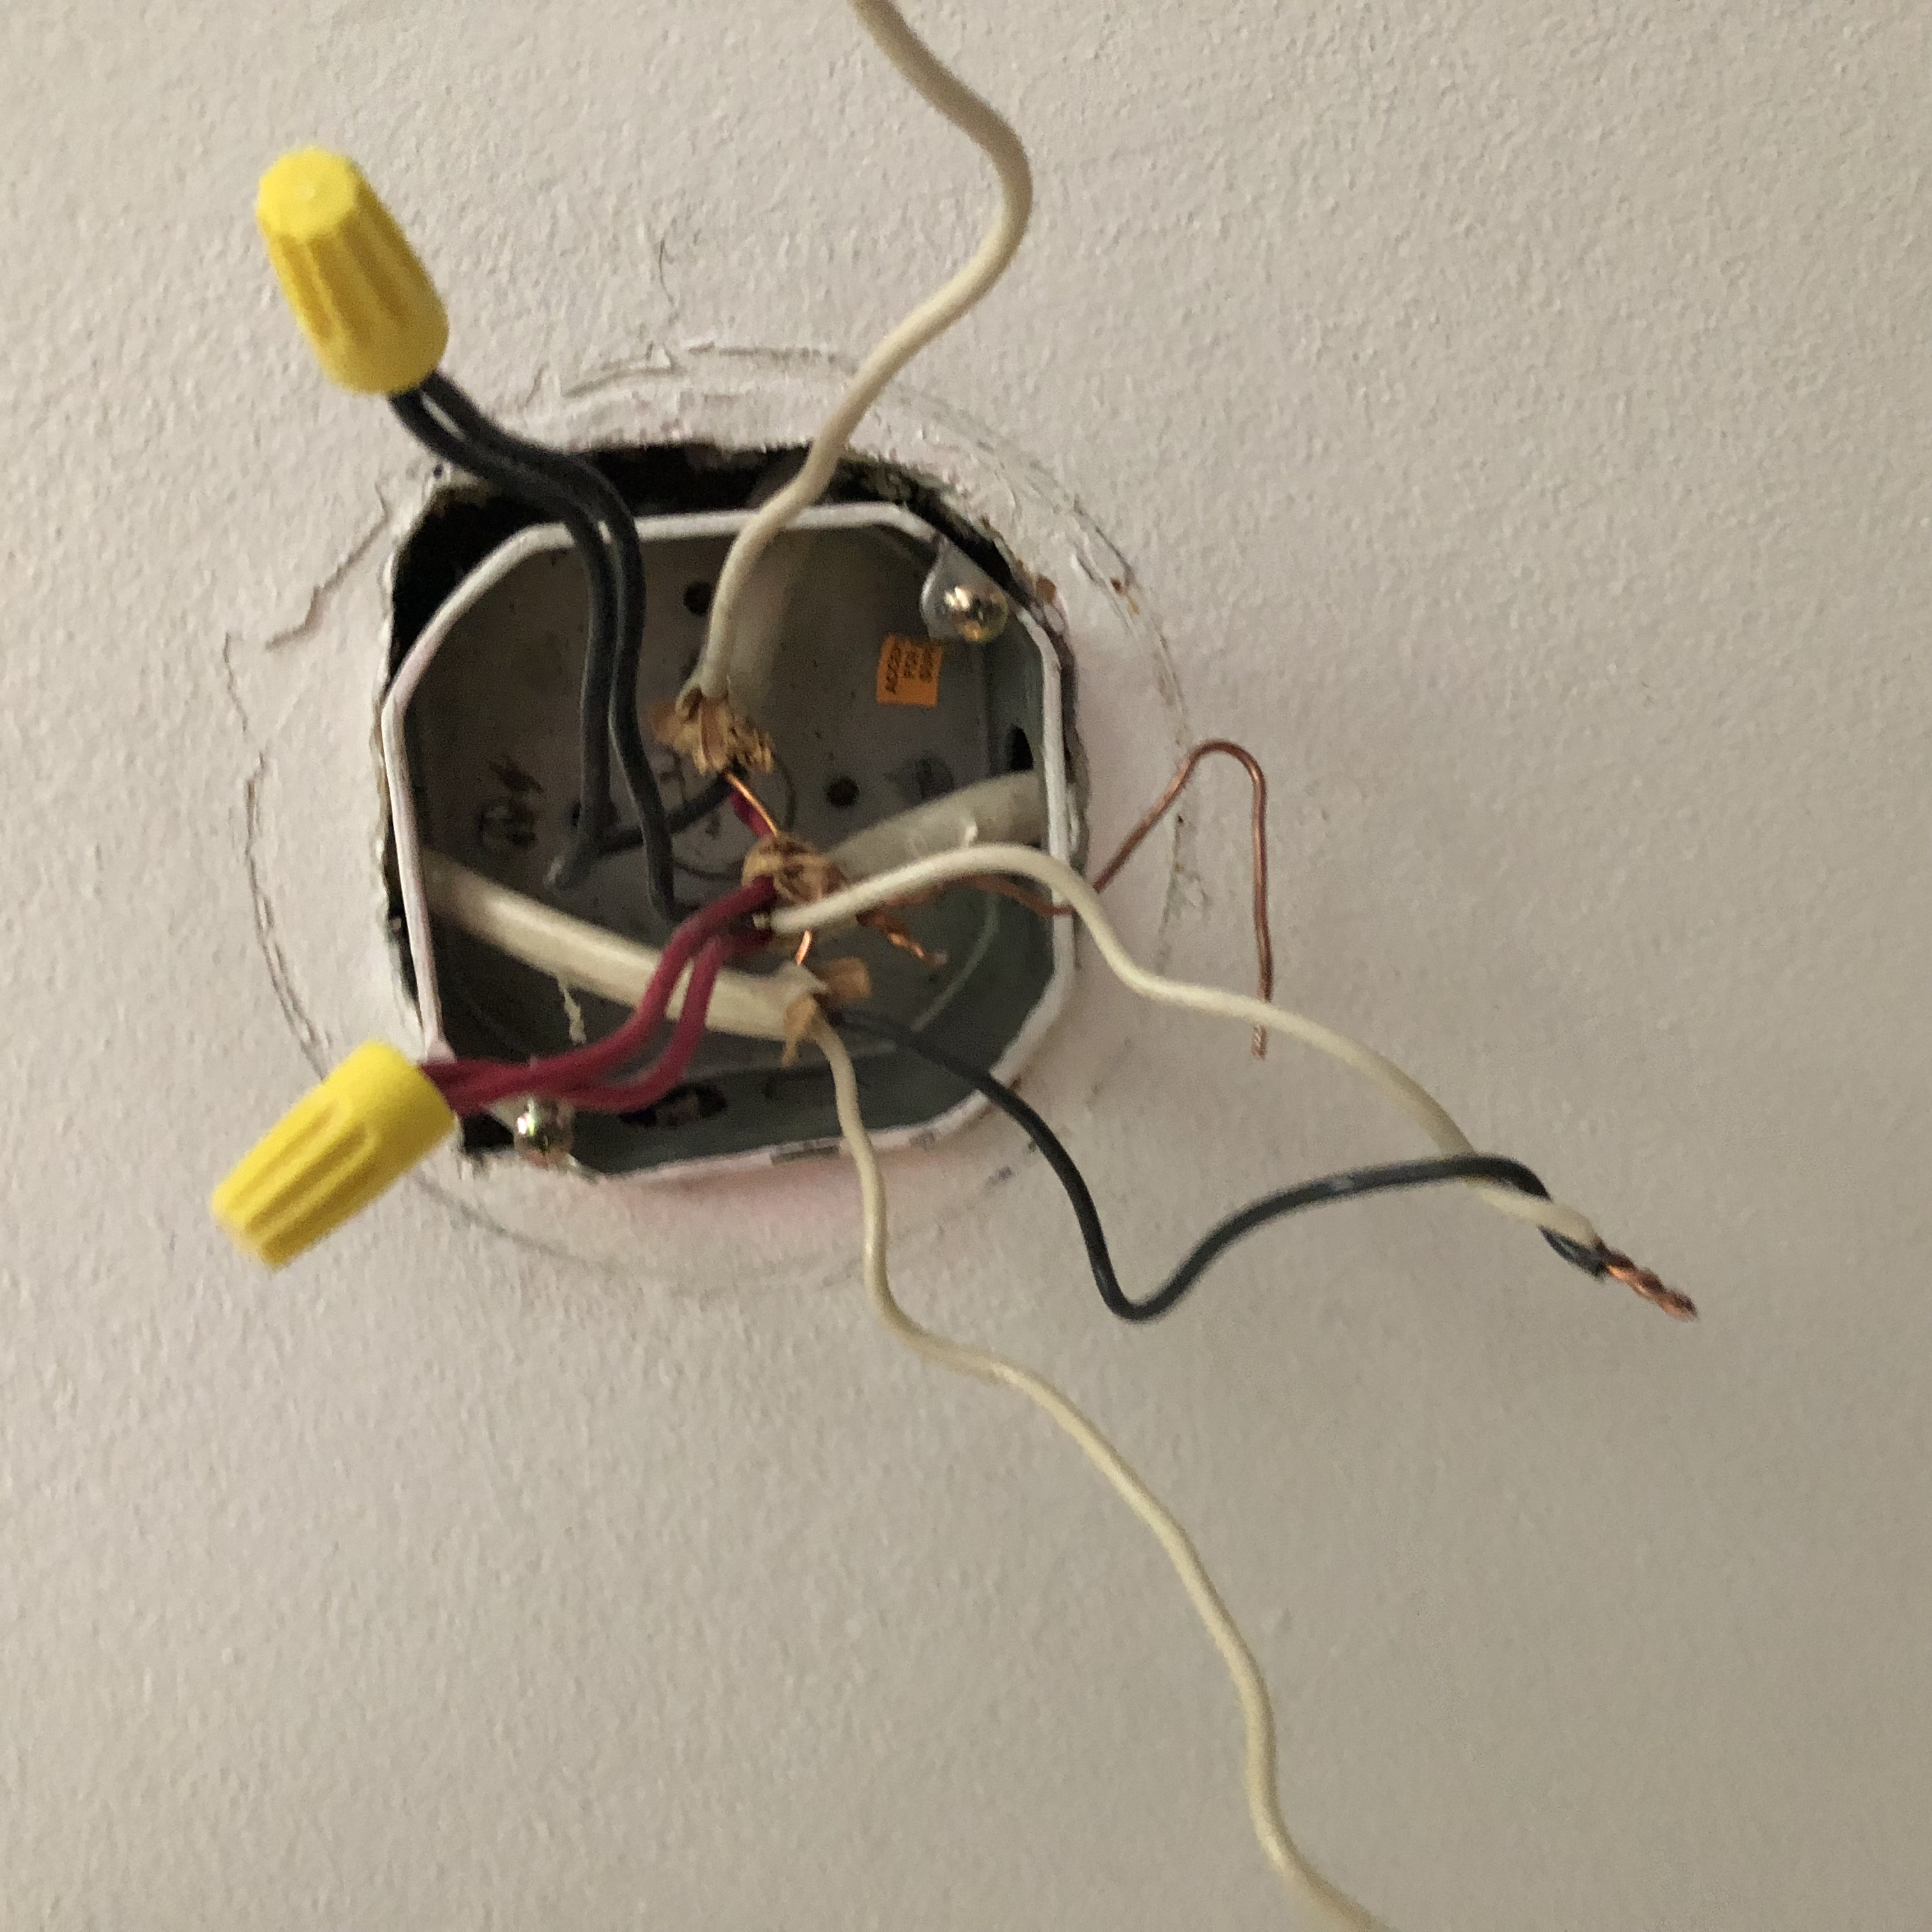 Coupling Fan And Lighting Switches Home Improvement Stack Exchange